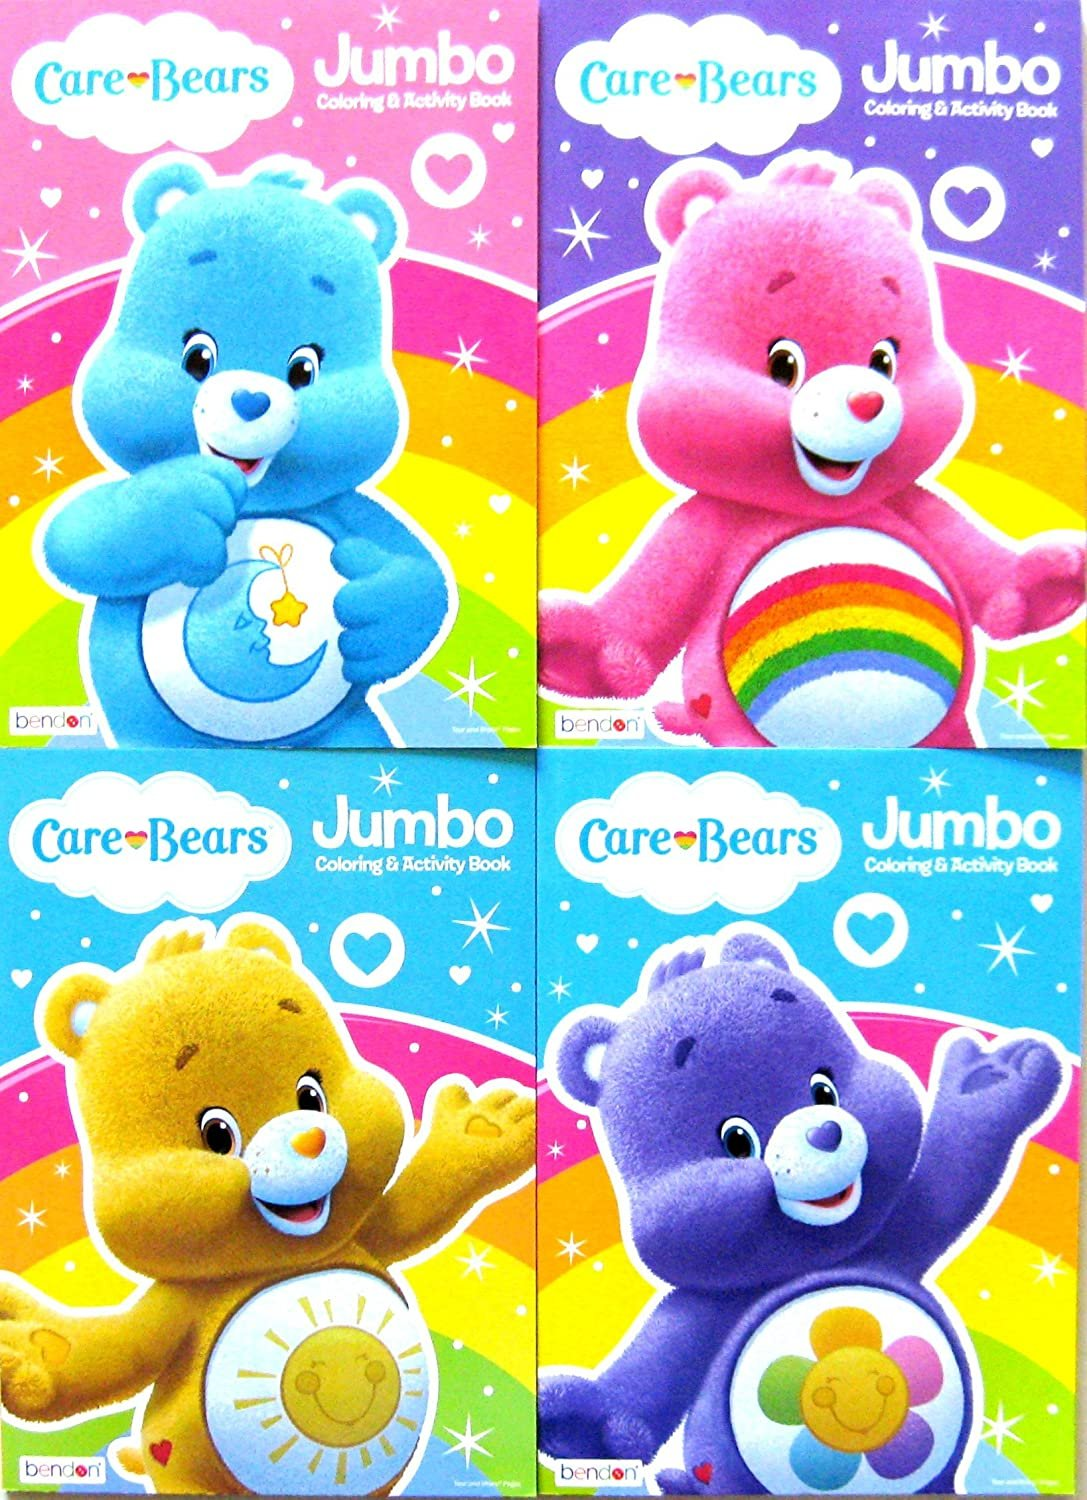 Care Bears Jumbo Coloring and Activity Book Set (Four 96-page Books)